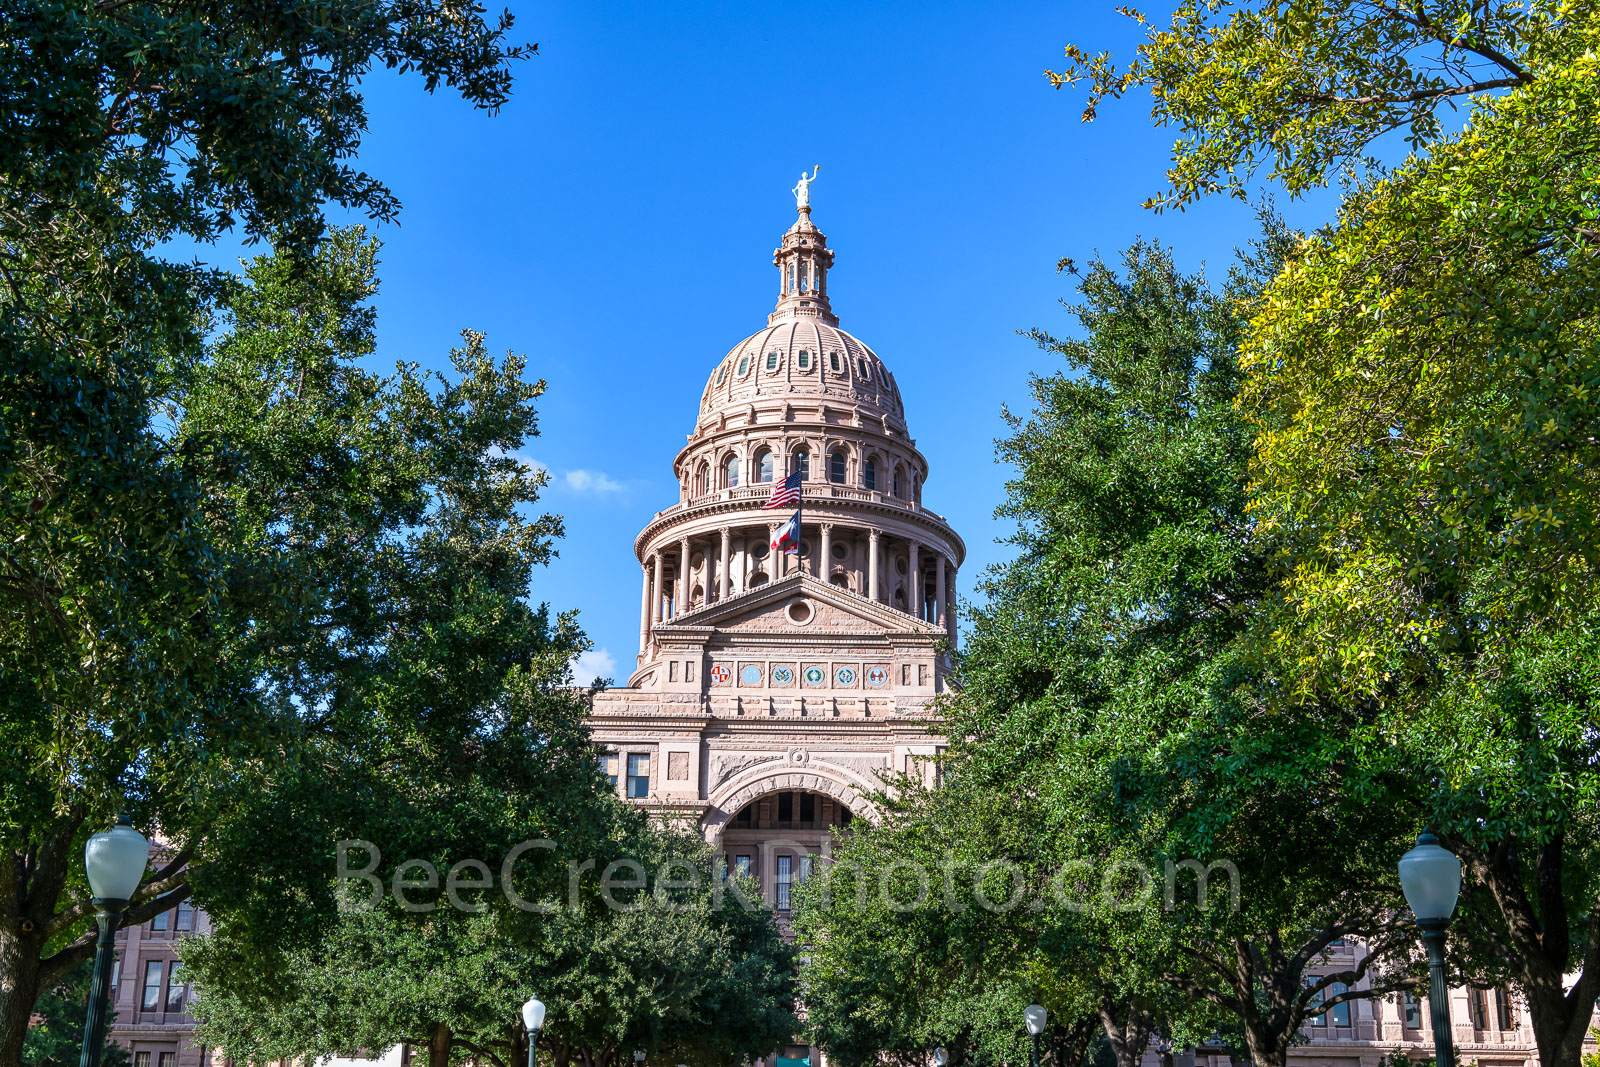 Capitol of Texas - The top of the Texas Capitol in downtown Austin through the trees from the South view. The Capitol of Texas...